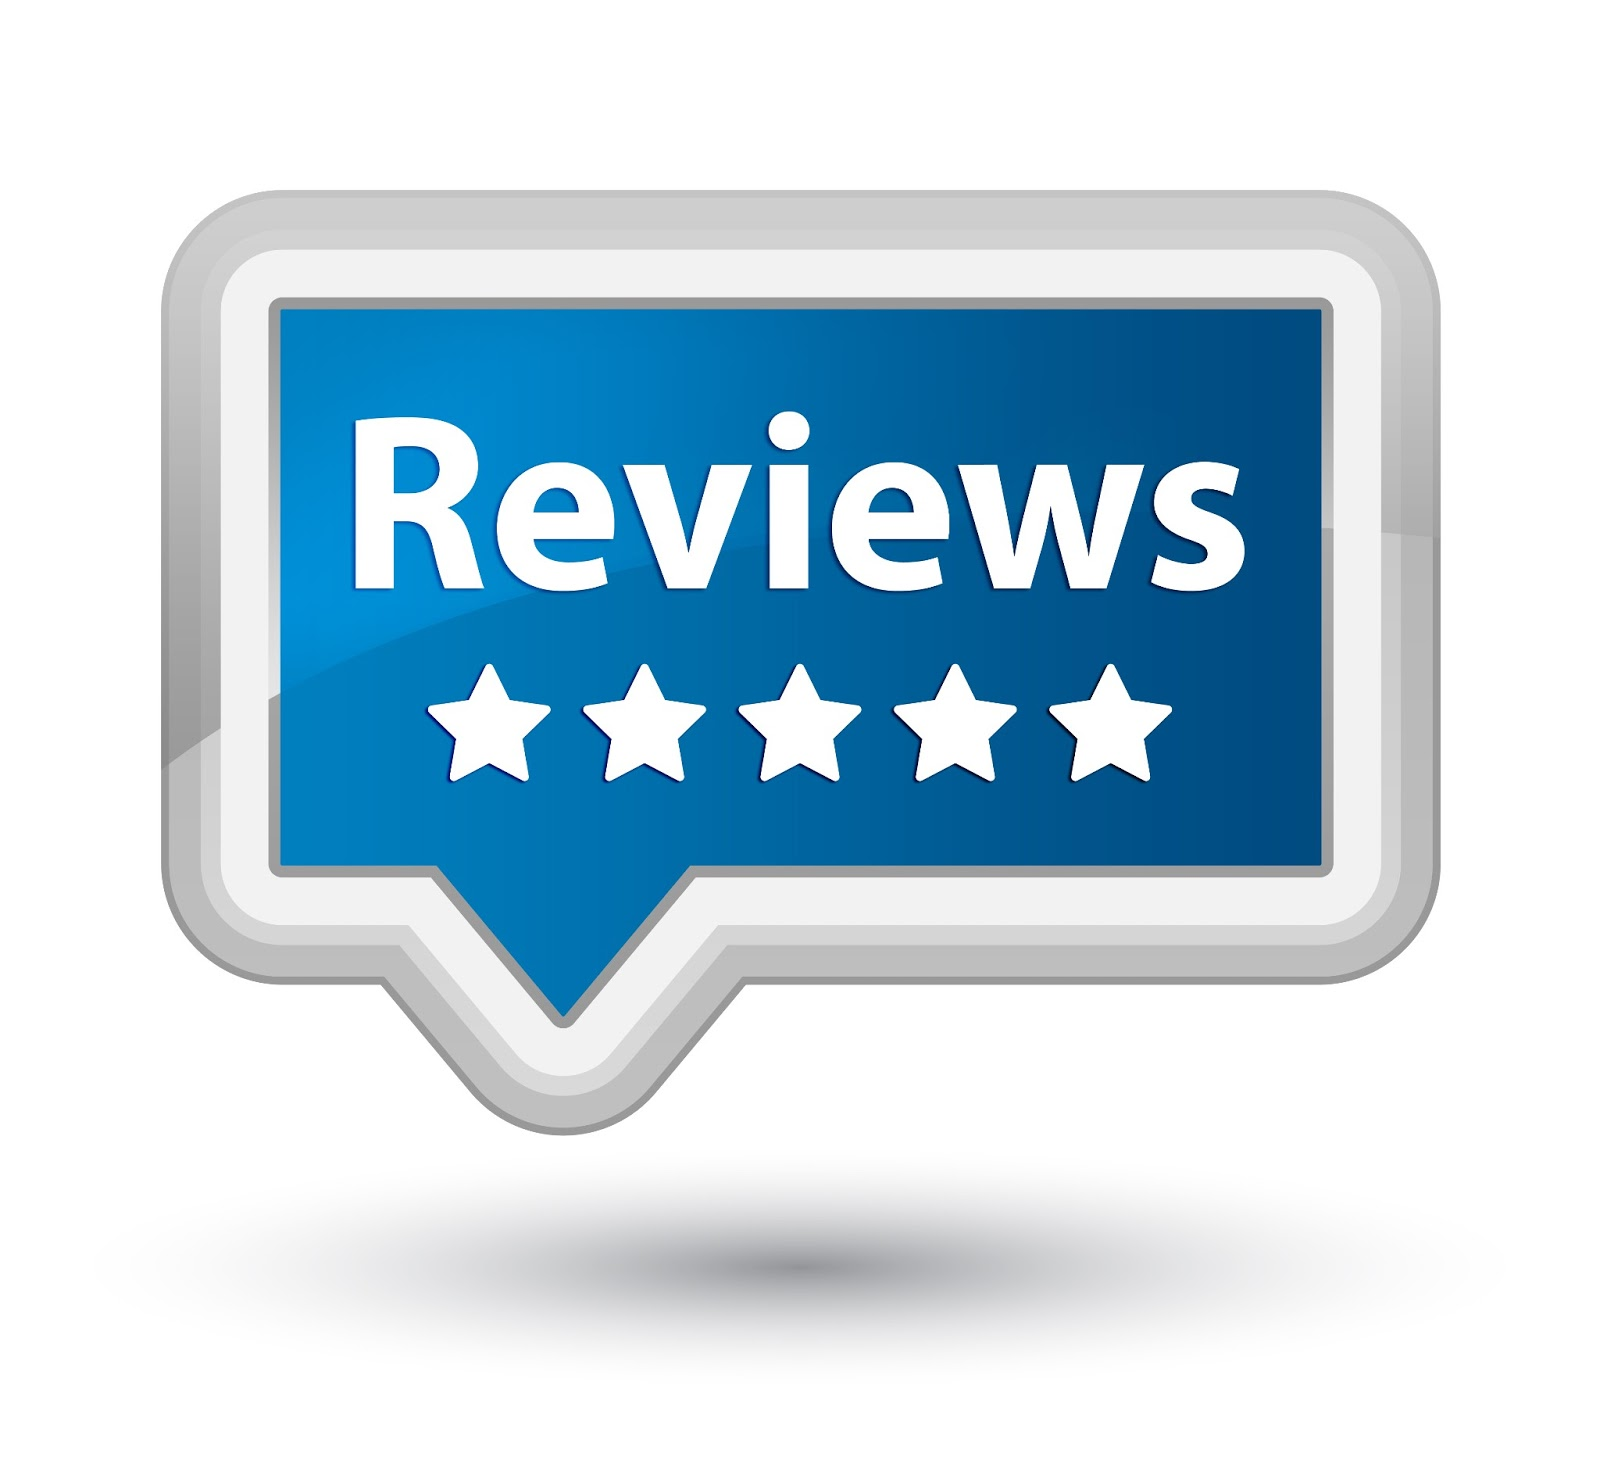 Make 25  reviews to advertise your company or product